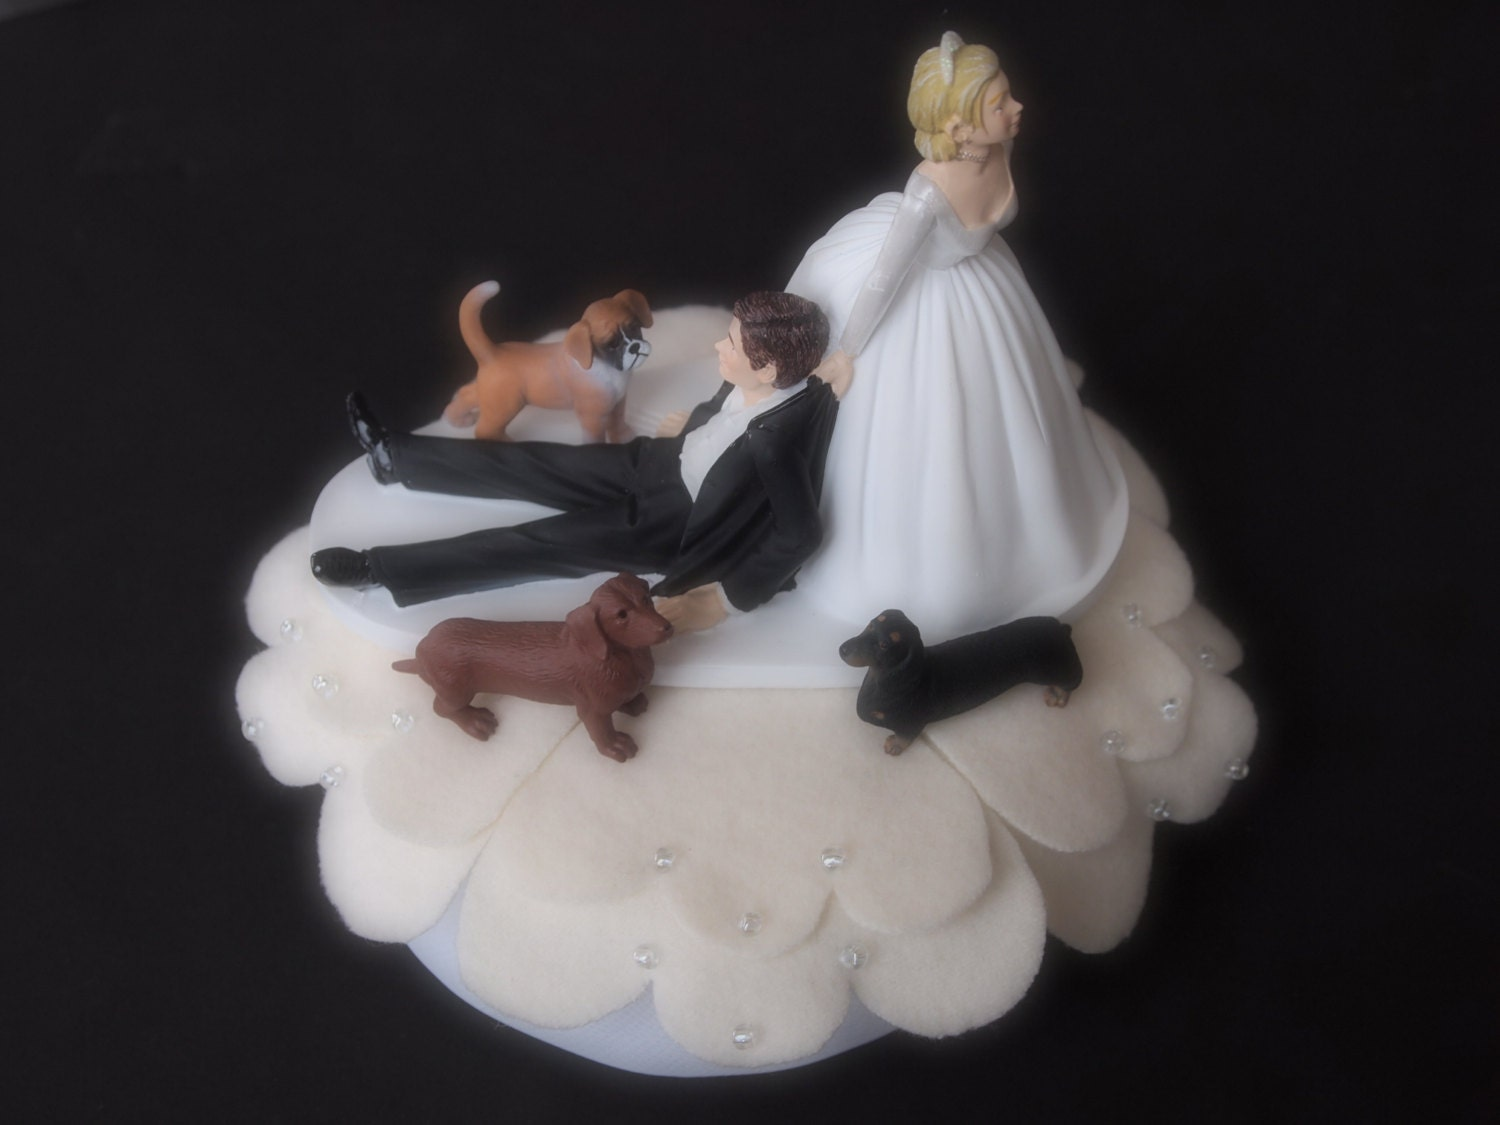 Wedding Cake Topper ical Bride and Groom 3 Dogs Brown and